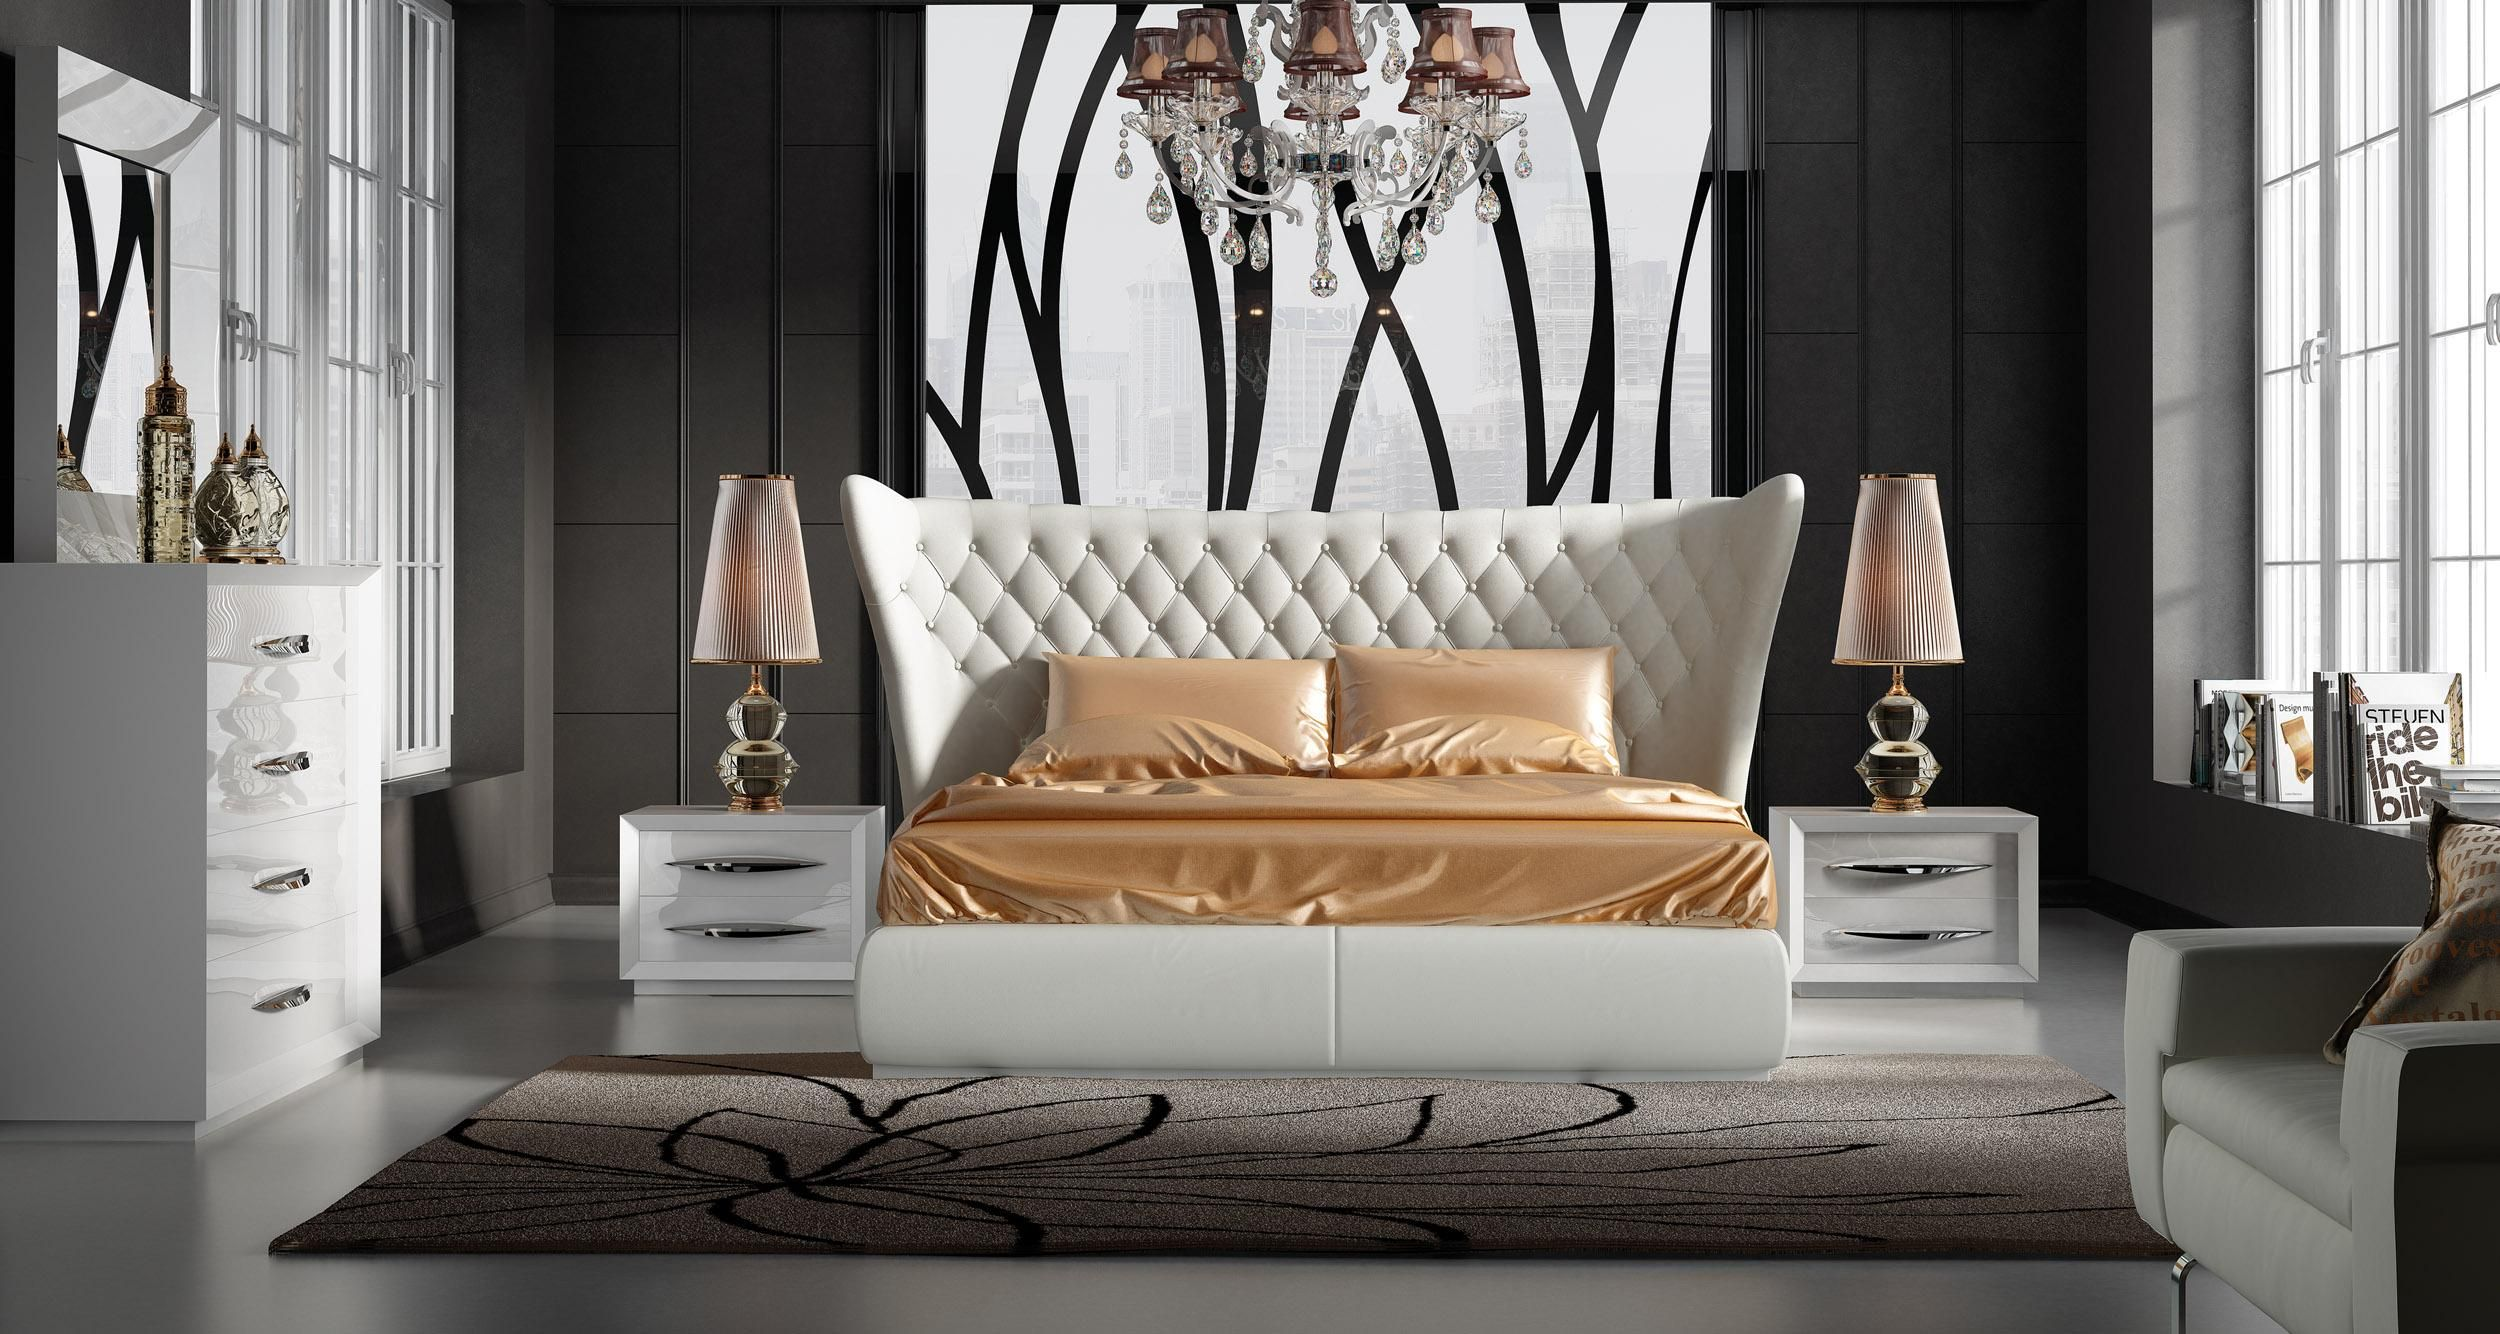 Stylish Leather Luxury Bedroom Furniture Sets Luxury Bedroom Sets Luxury Bedroom Furniture Contemporary Bedroom Sets